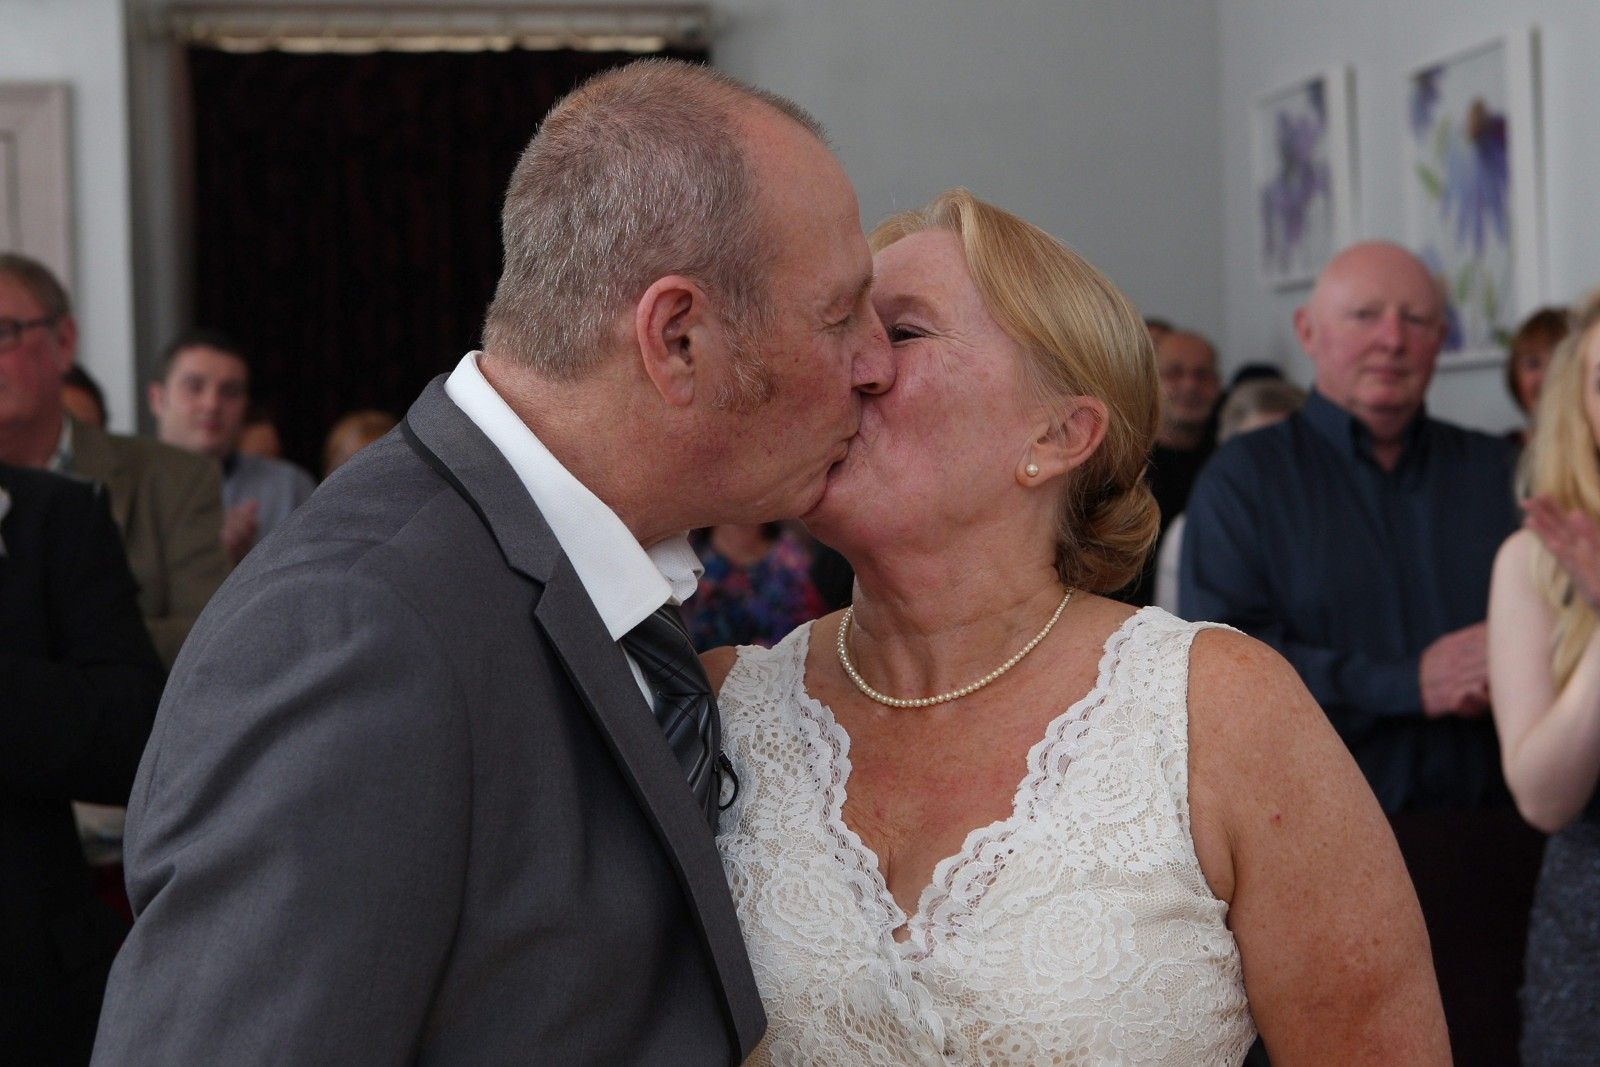 Groom with dementia brings wedding forward so he can remember marrying love of his life